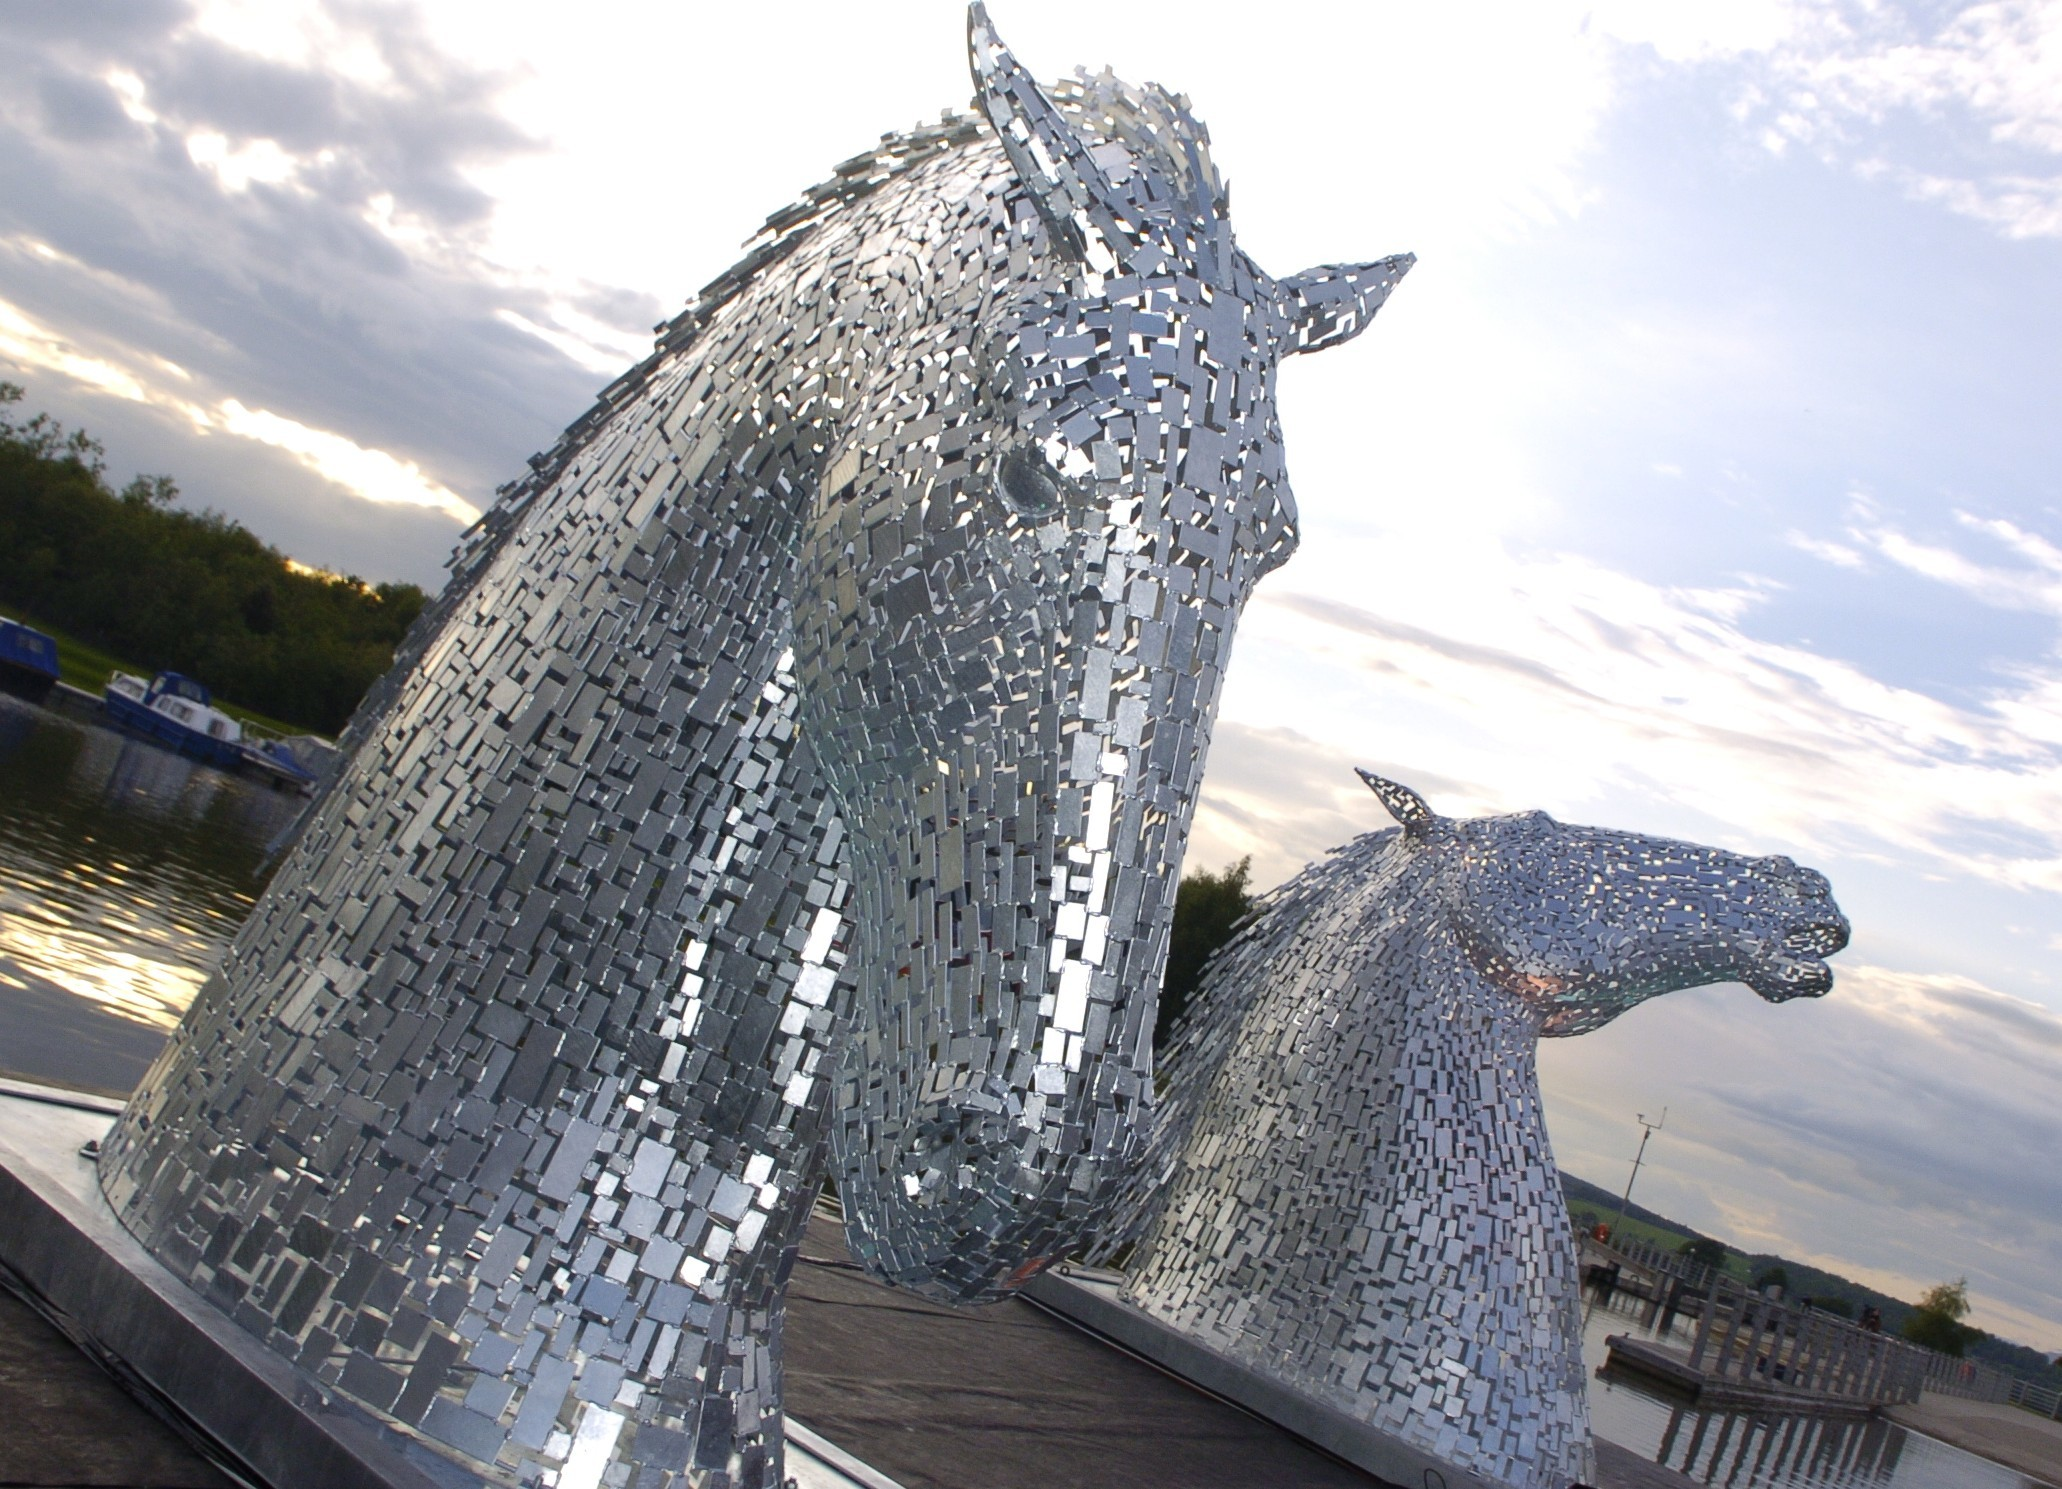 The Kelpie Maquettes at The Helix